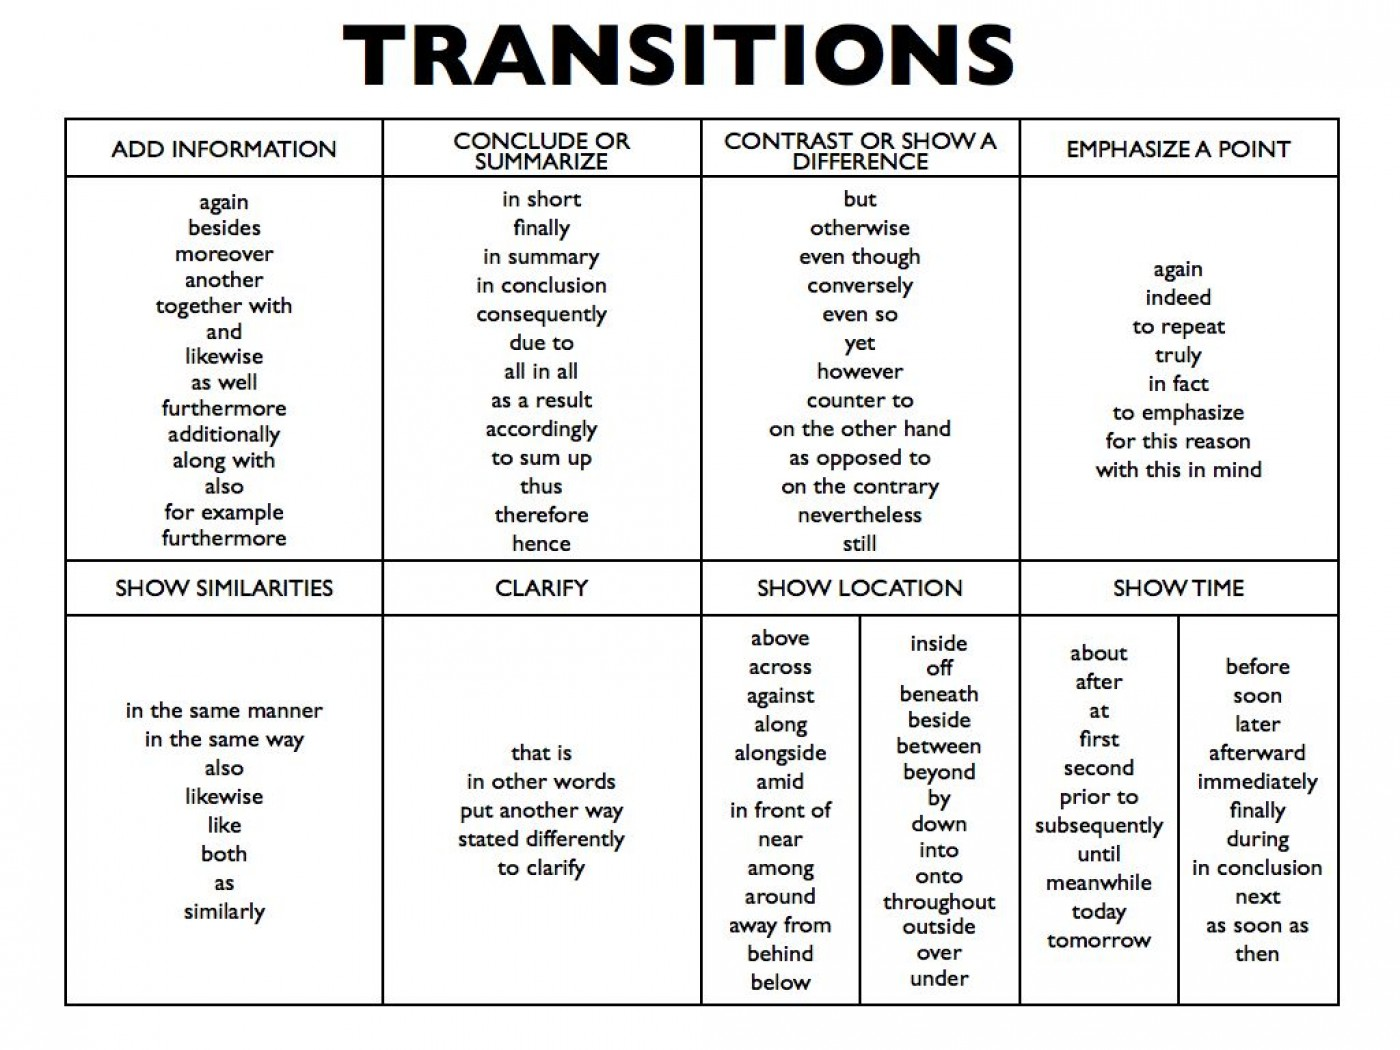 005 Essay Example Transitions 4995883 1 Orig Archaicawful Transition Words And Phrases List For Argumentative First Paragraph 1400